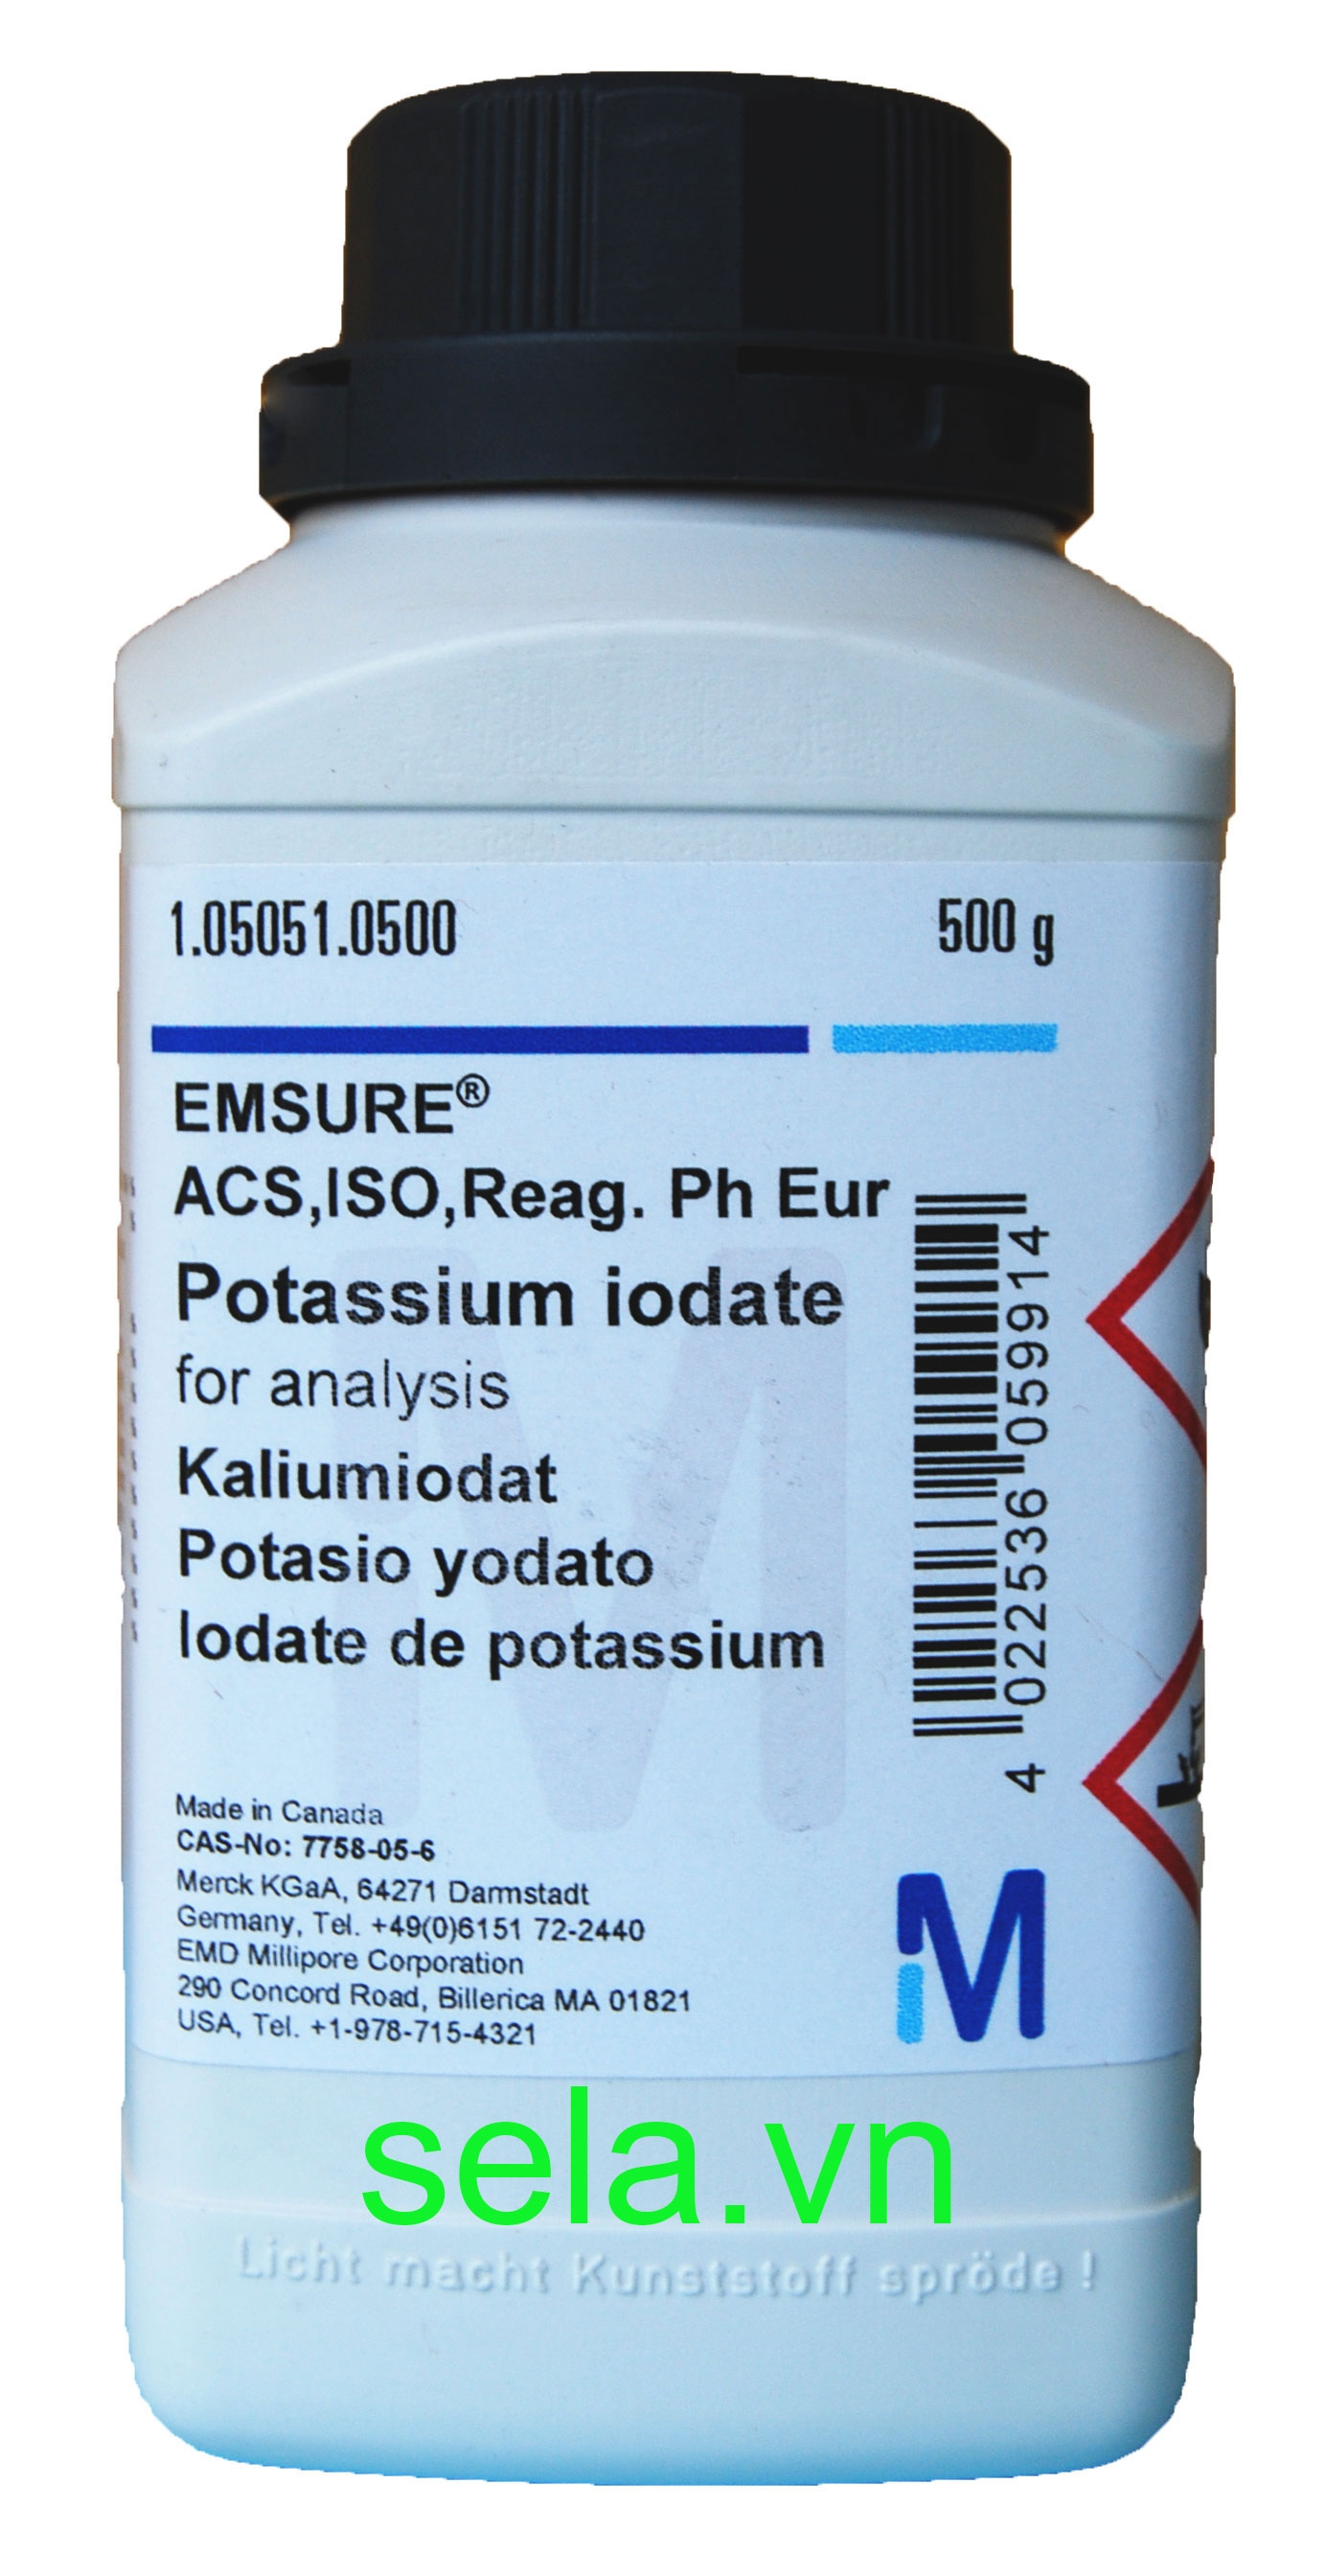 Potassium iodate for analysis EMSURE® ACS,ISO,Reag. Ph Eur